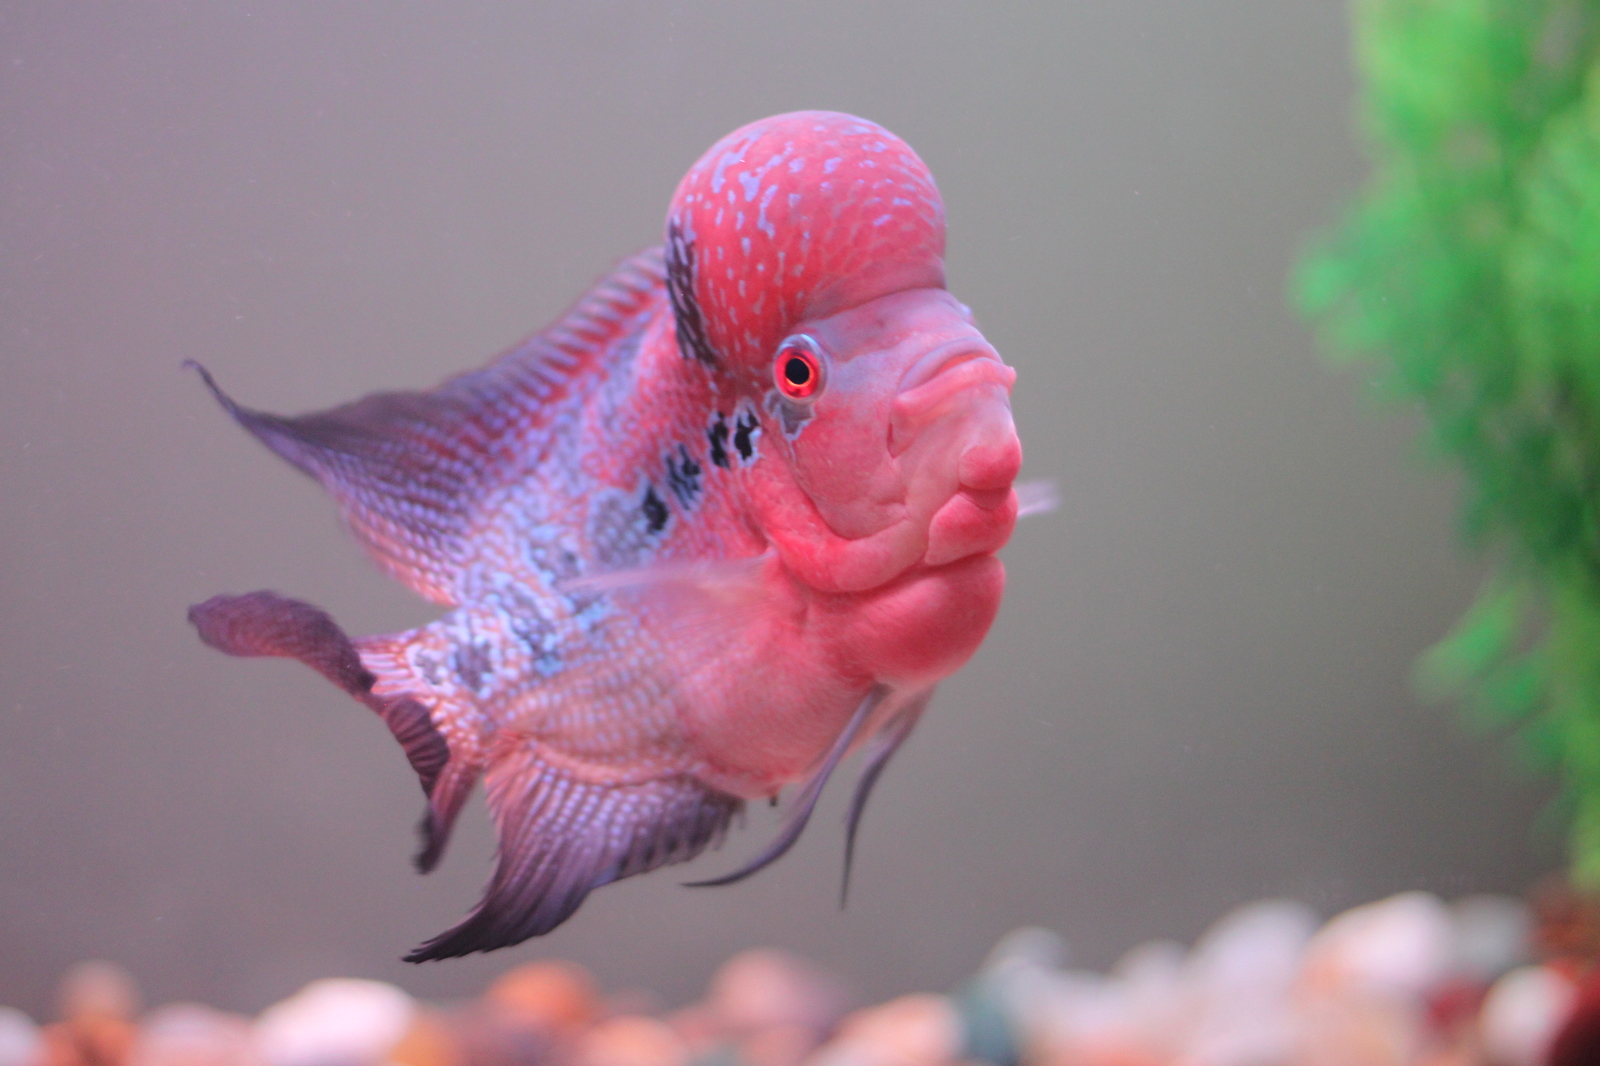 Flowerhorn Updated Pic 1 | by Korah Kuriakose